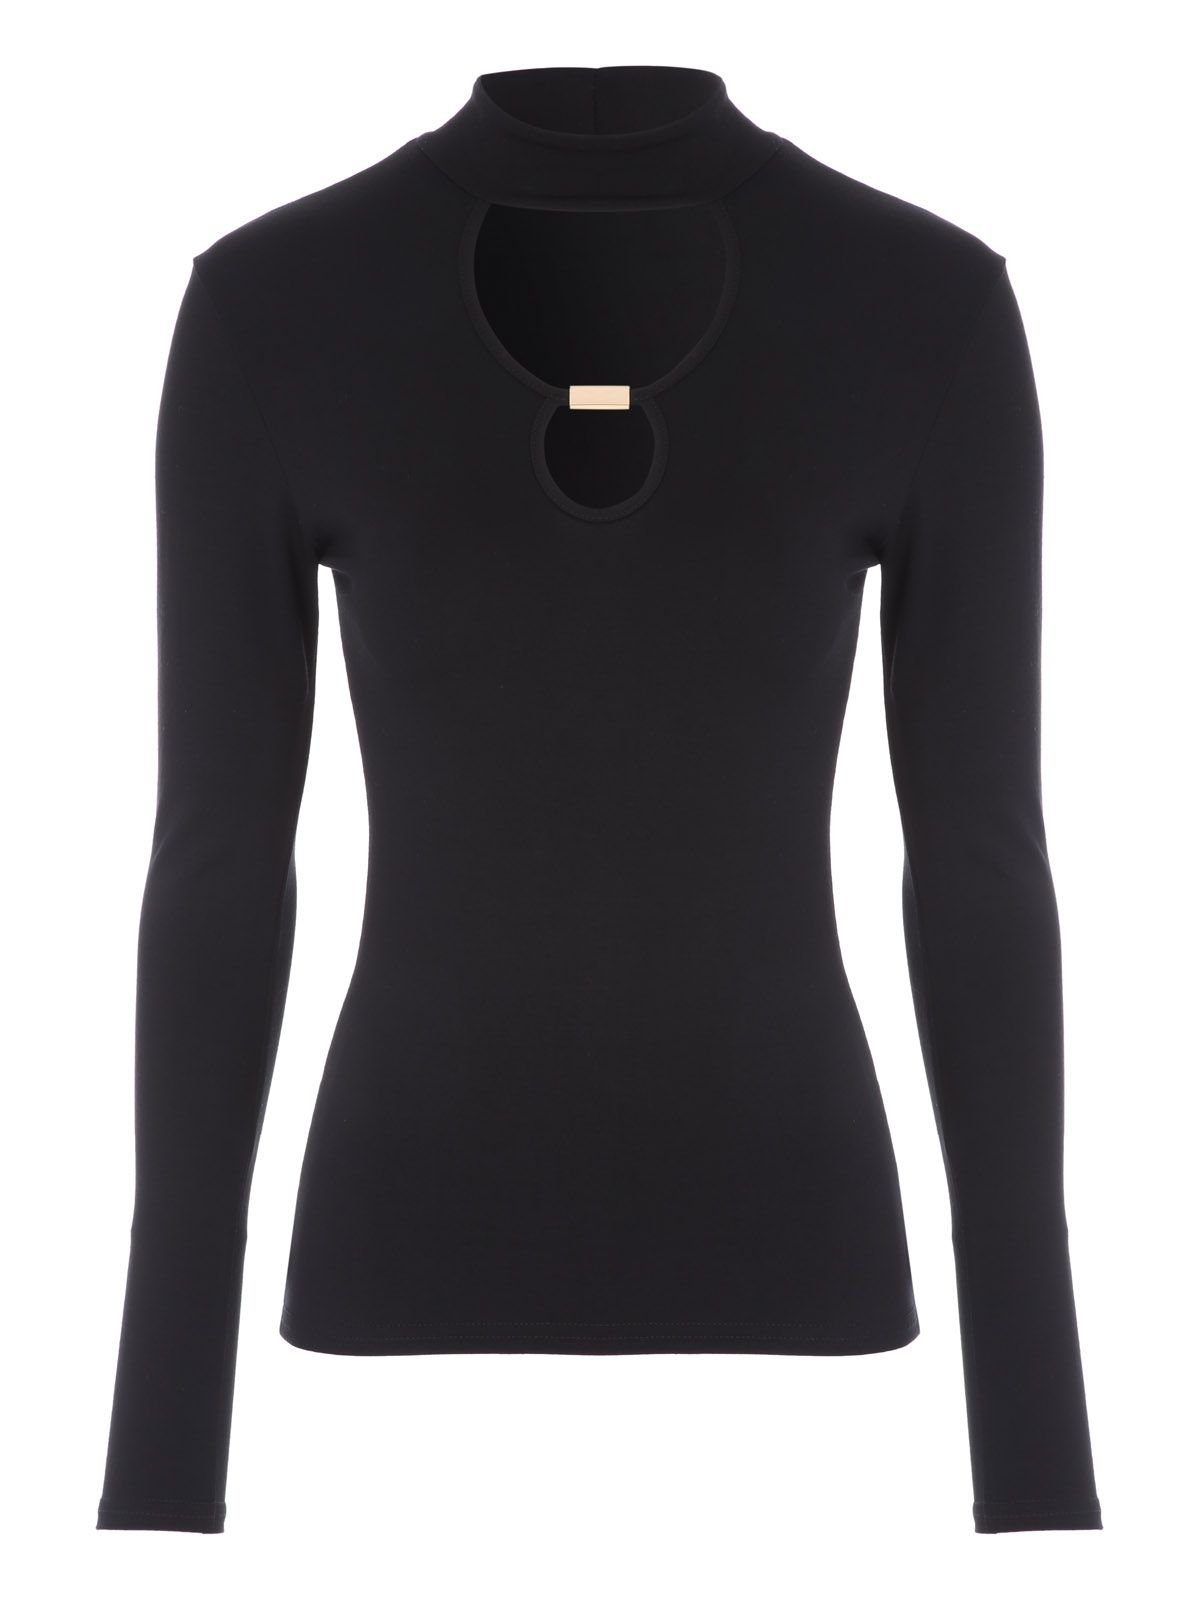 Jane Norman Jane Norman Long Sleeve Cut-Out Top, Black